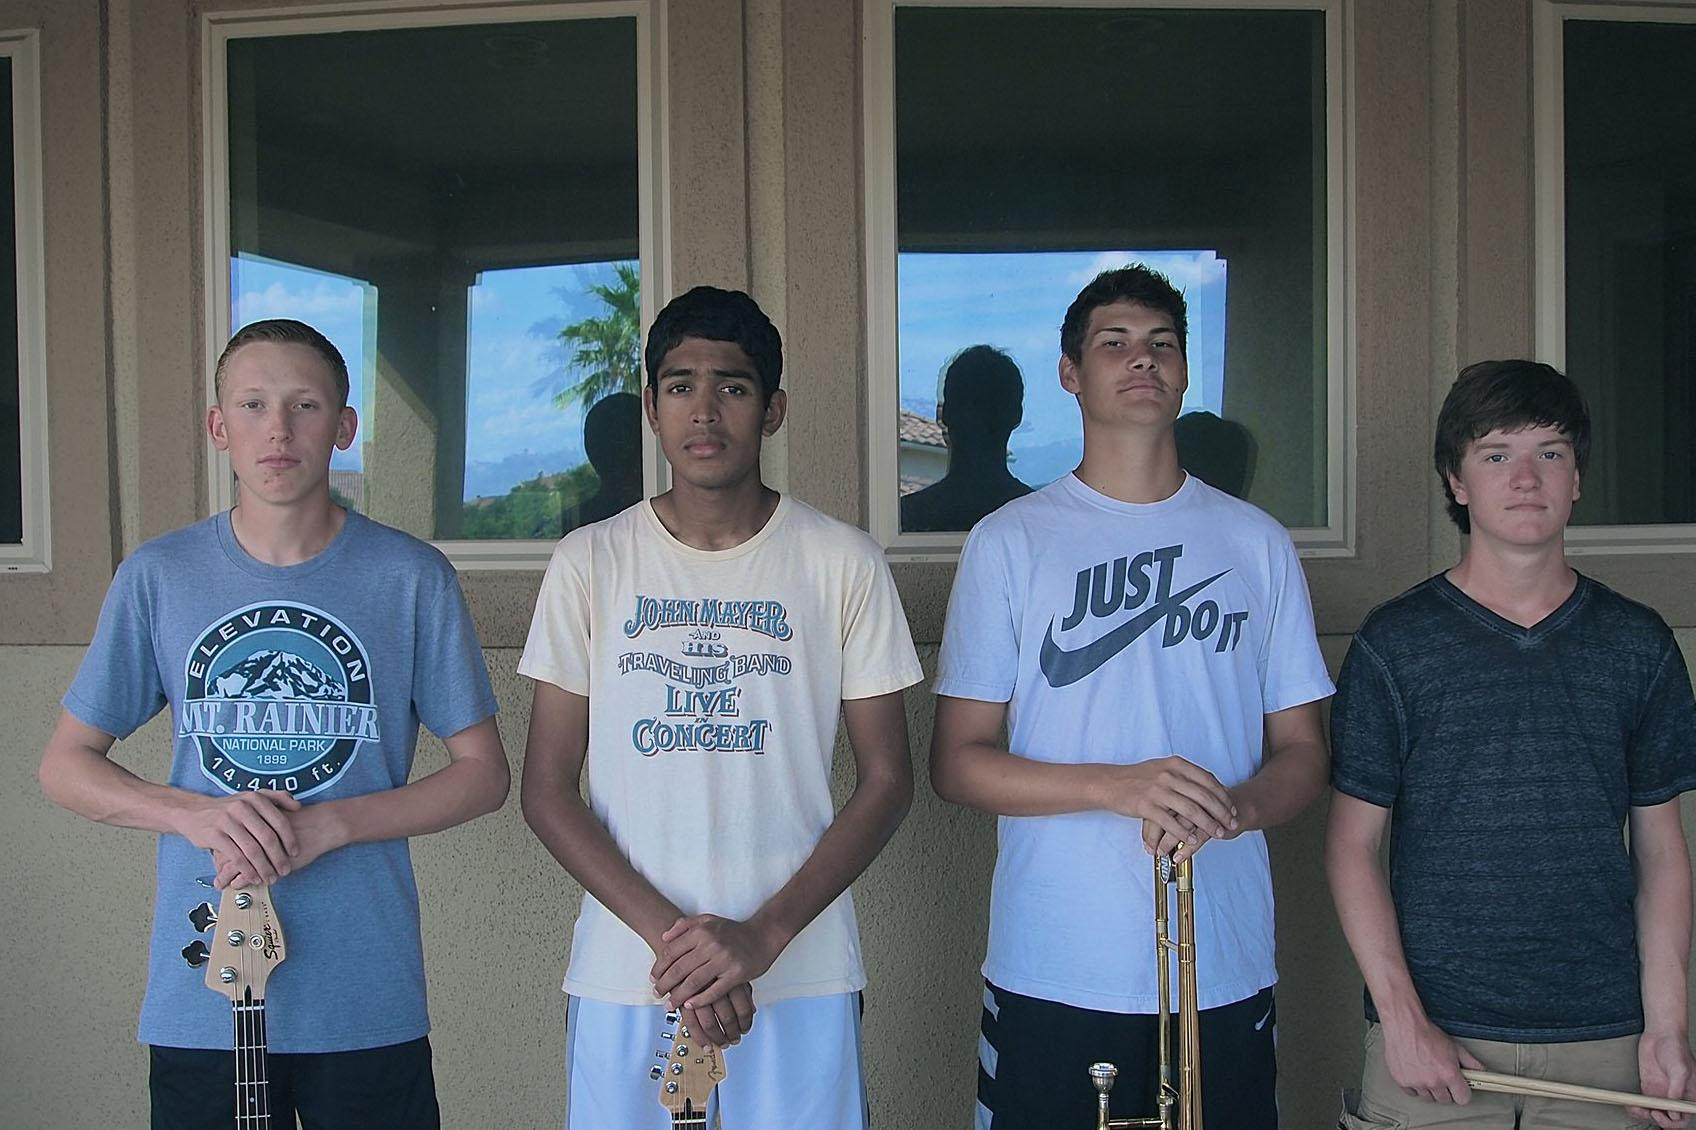 From left to right: Austin Gray, Vikram Sundaram, Cody Shelton and Torin Maguire